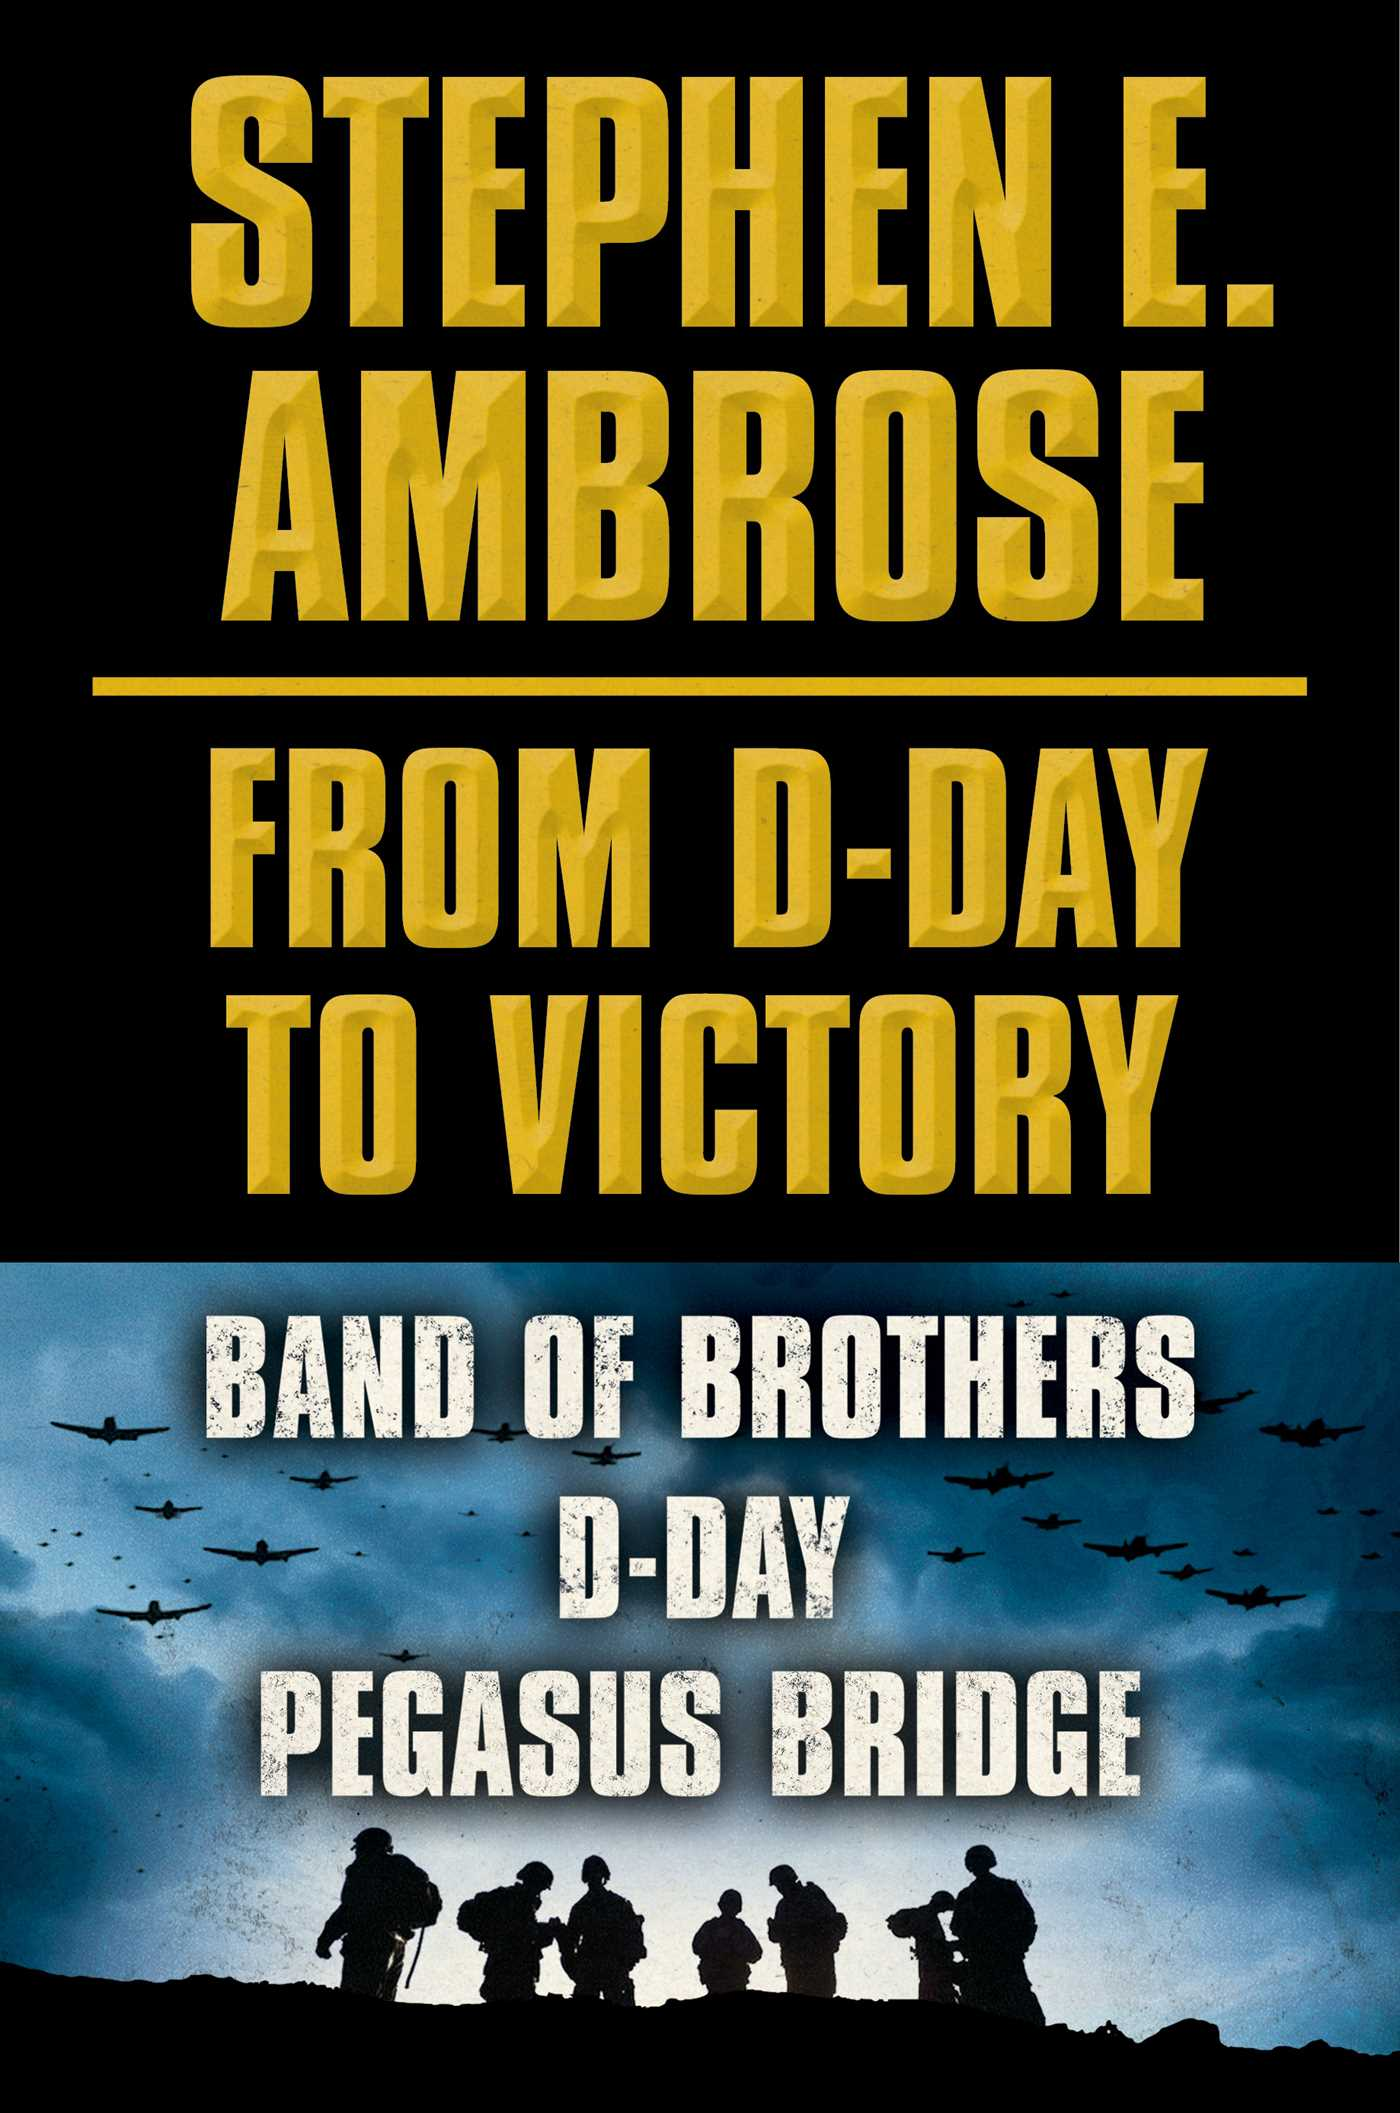 Stephen-e-ambrose-from-d-day-to-victory-e-book-9781476755816_hr